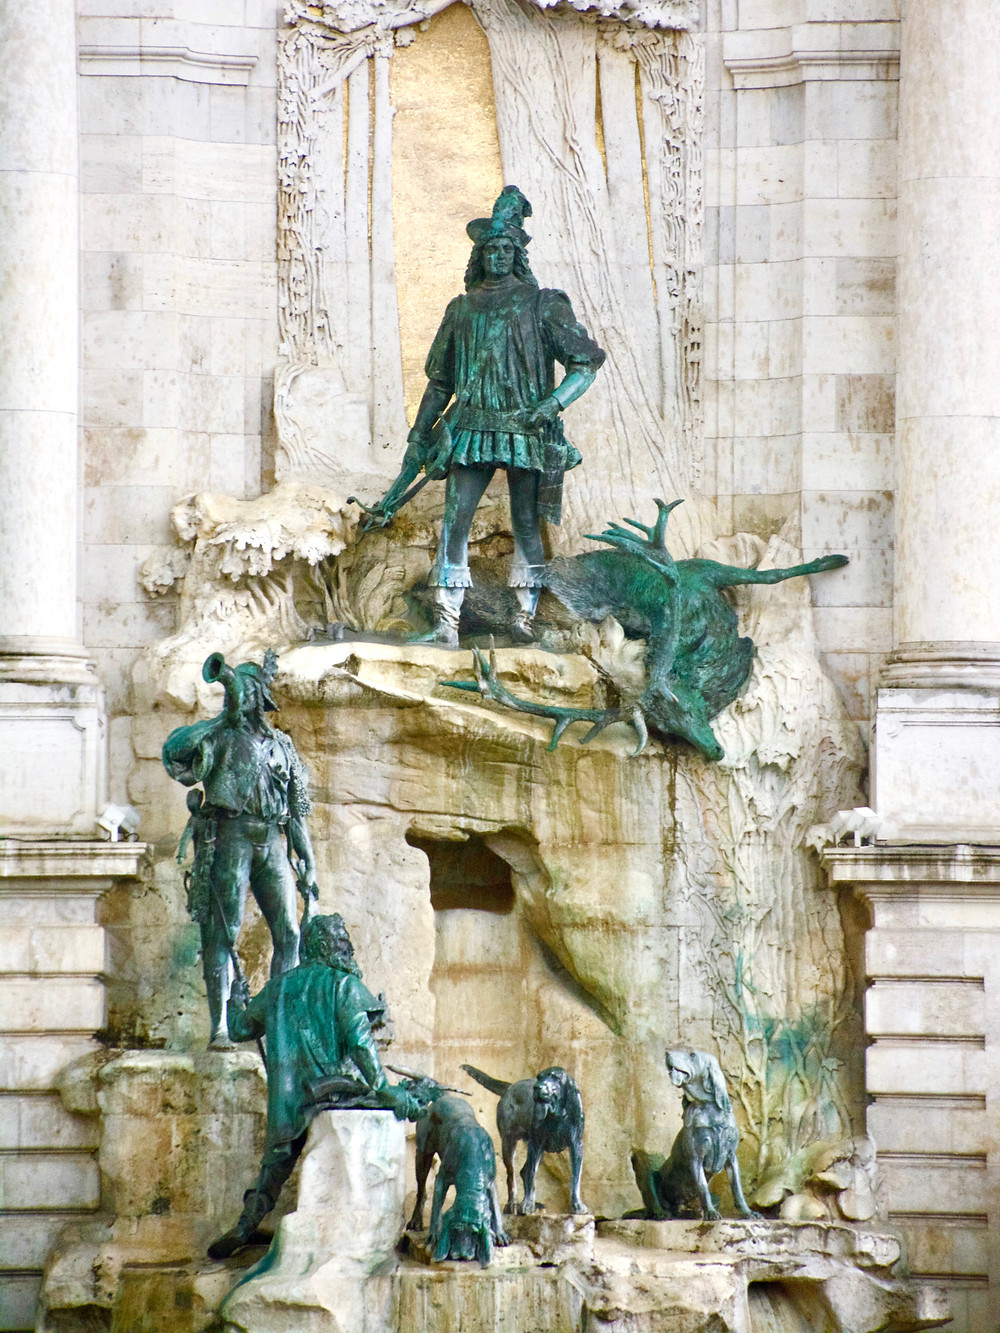 The Mattias Fountain with turquoise bronze figures of hunters, their dogs, and killed stags at the Buda Castle in Budapest